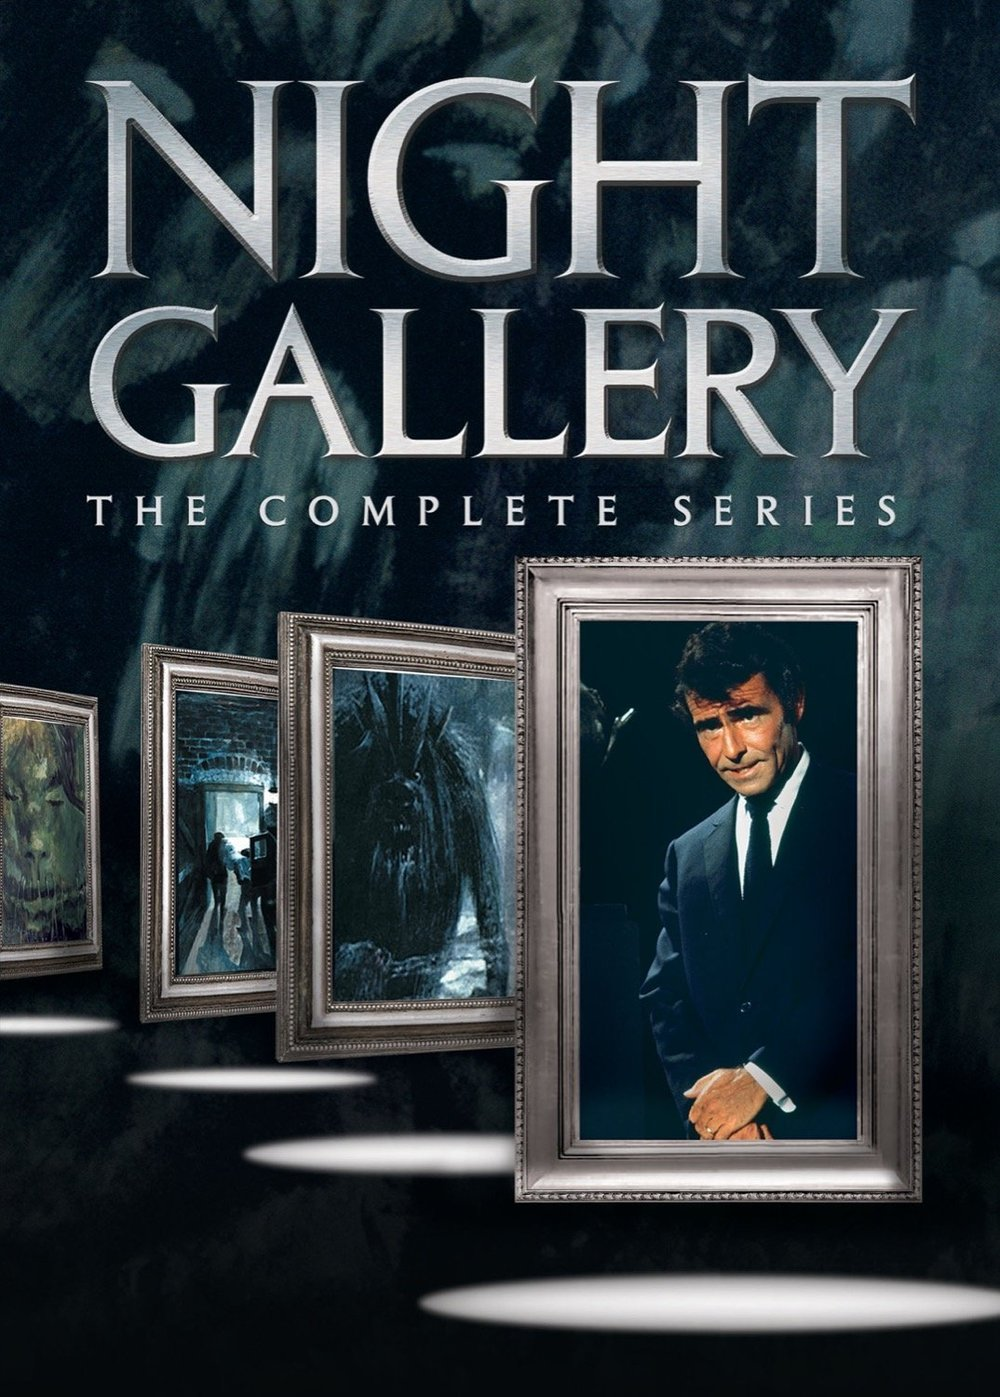 227nightgallerycomplete.jpg